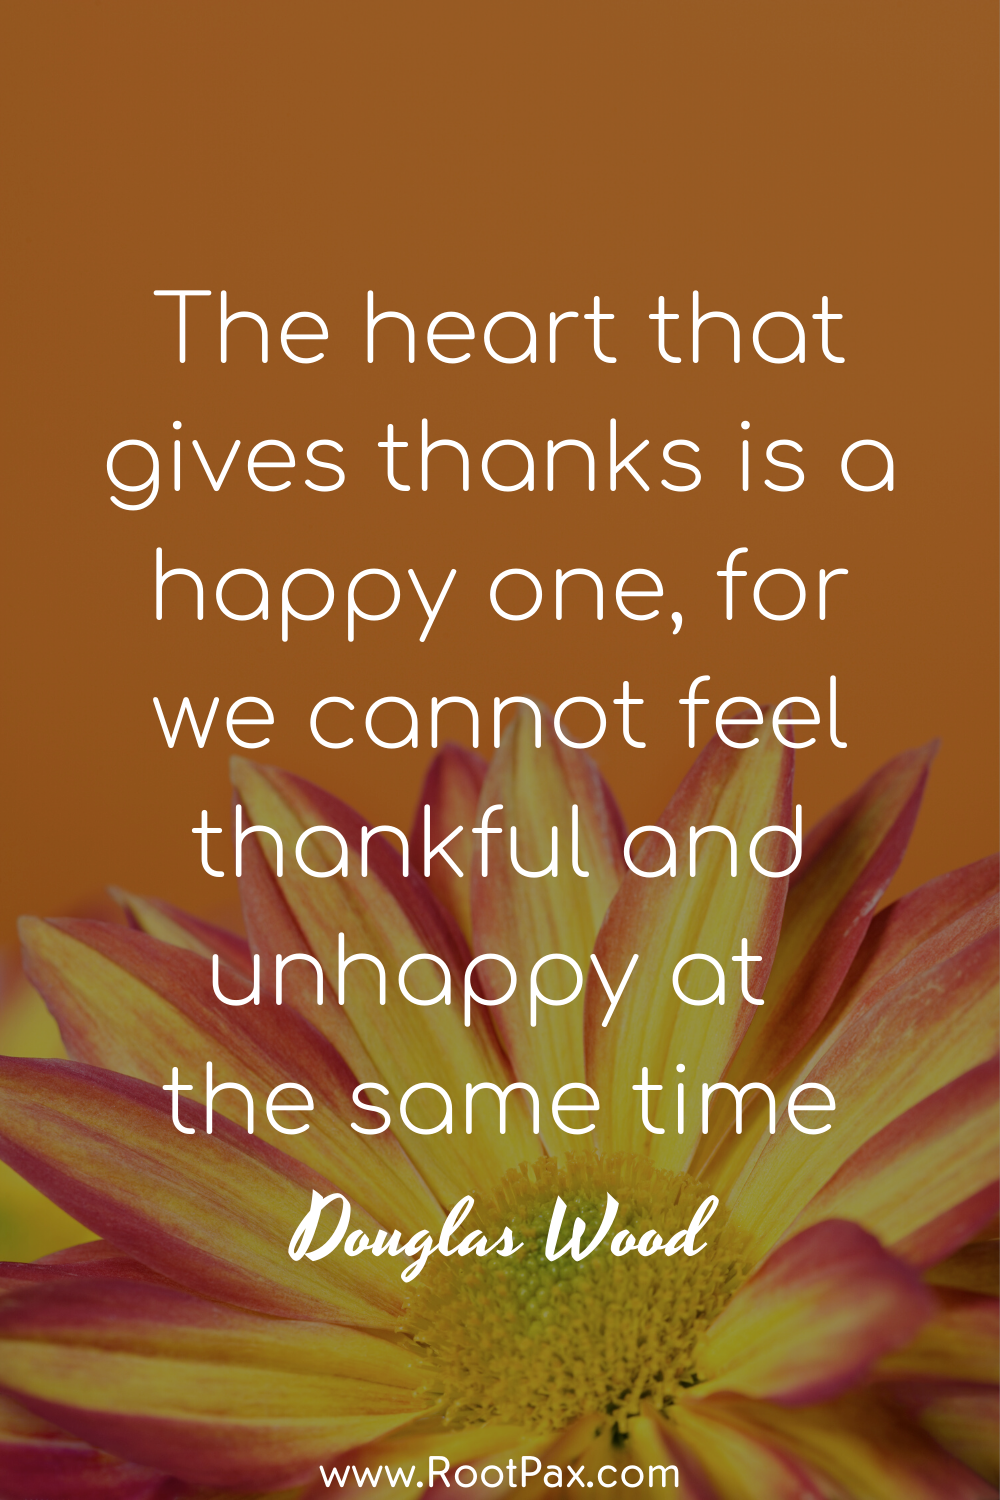 43+ Thankful and grateful quotes ideas in 2021